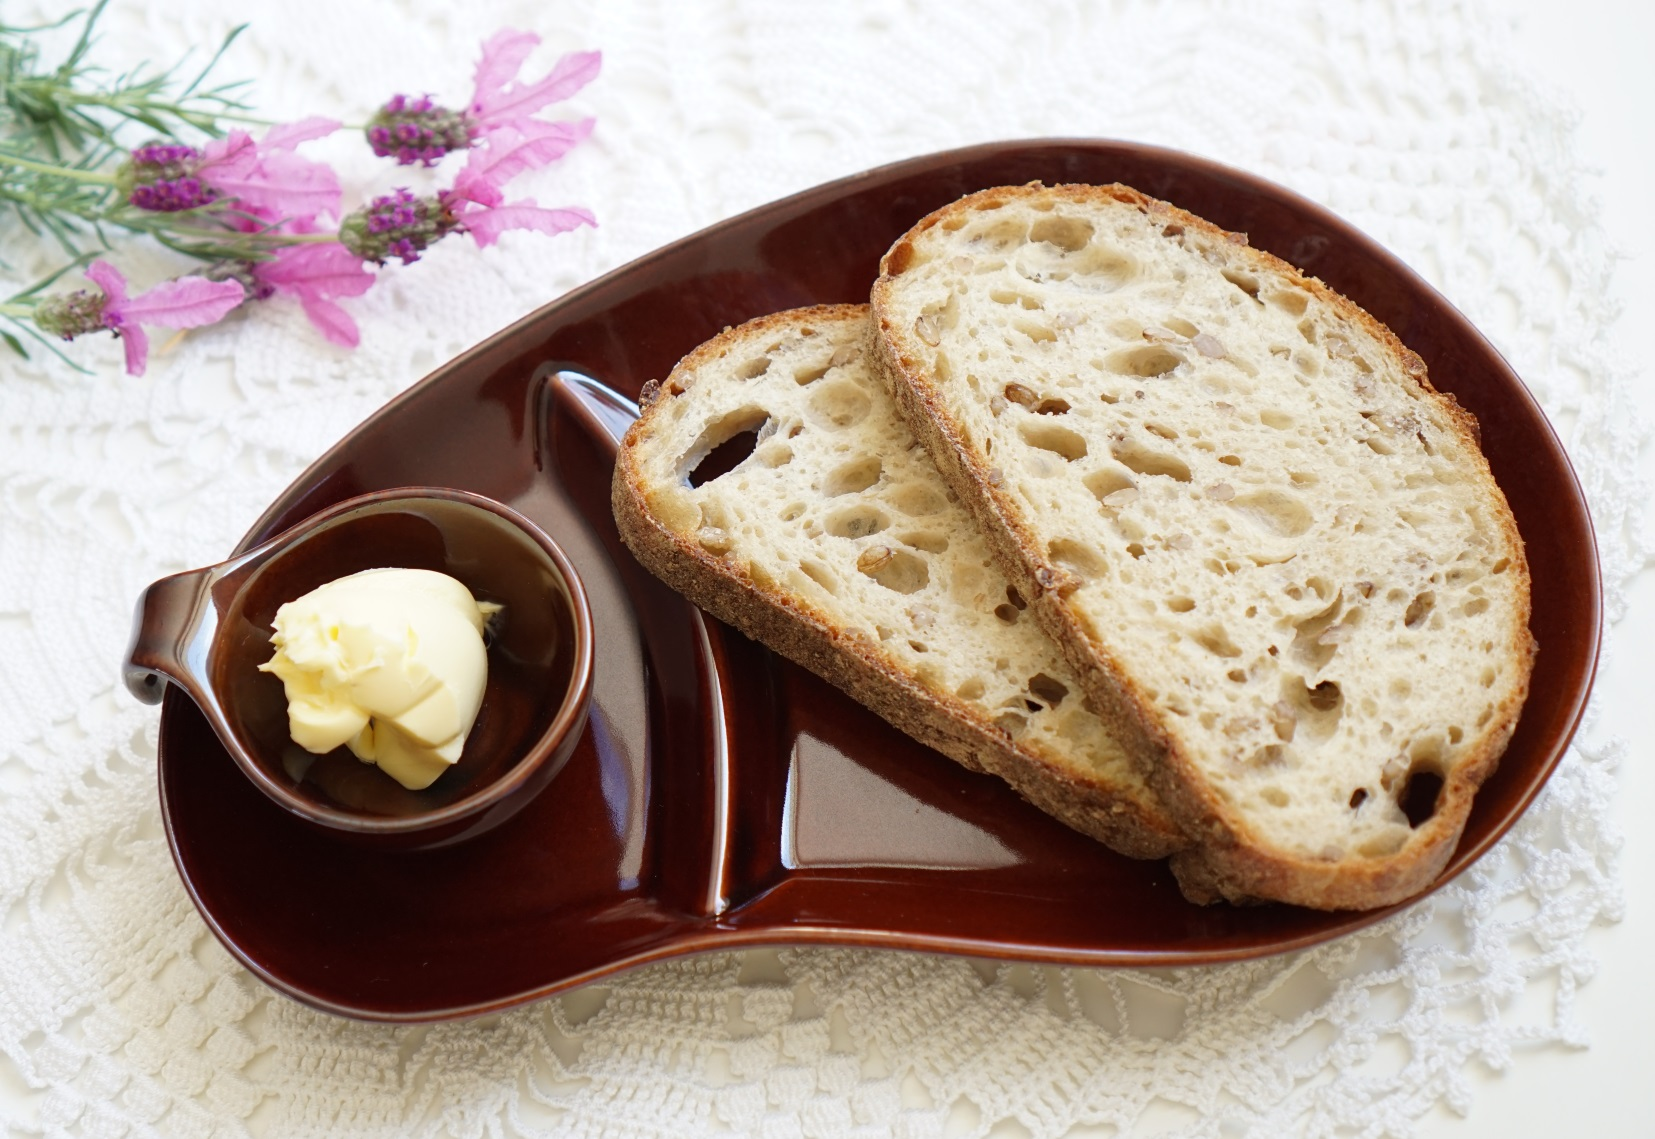 I bought some nice sourdough bread so I served it on this Minoware serving plate set